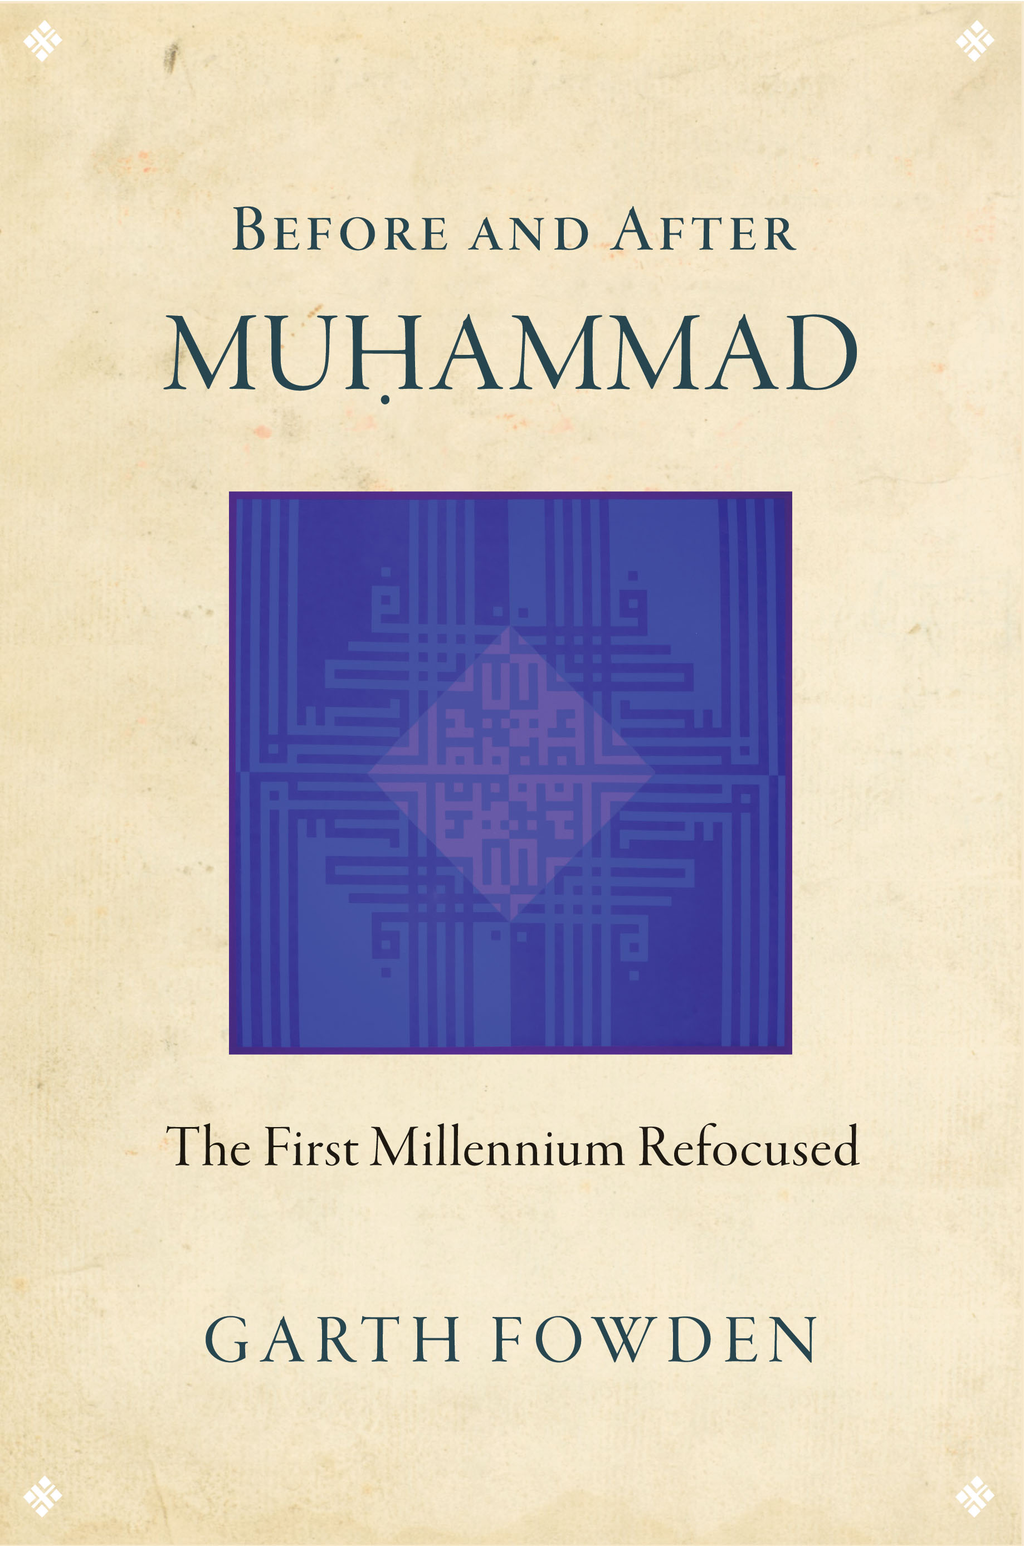 Before and After Muhammad The First Millennium Refocused